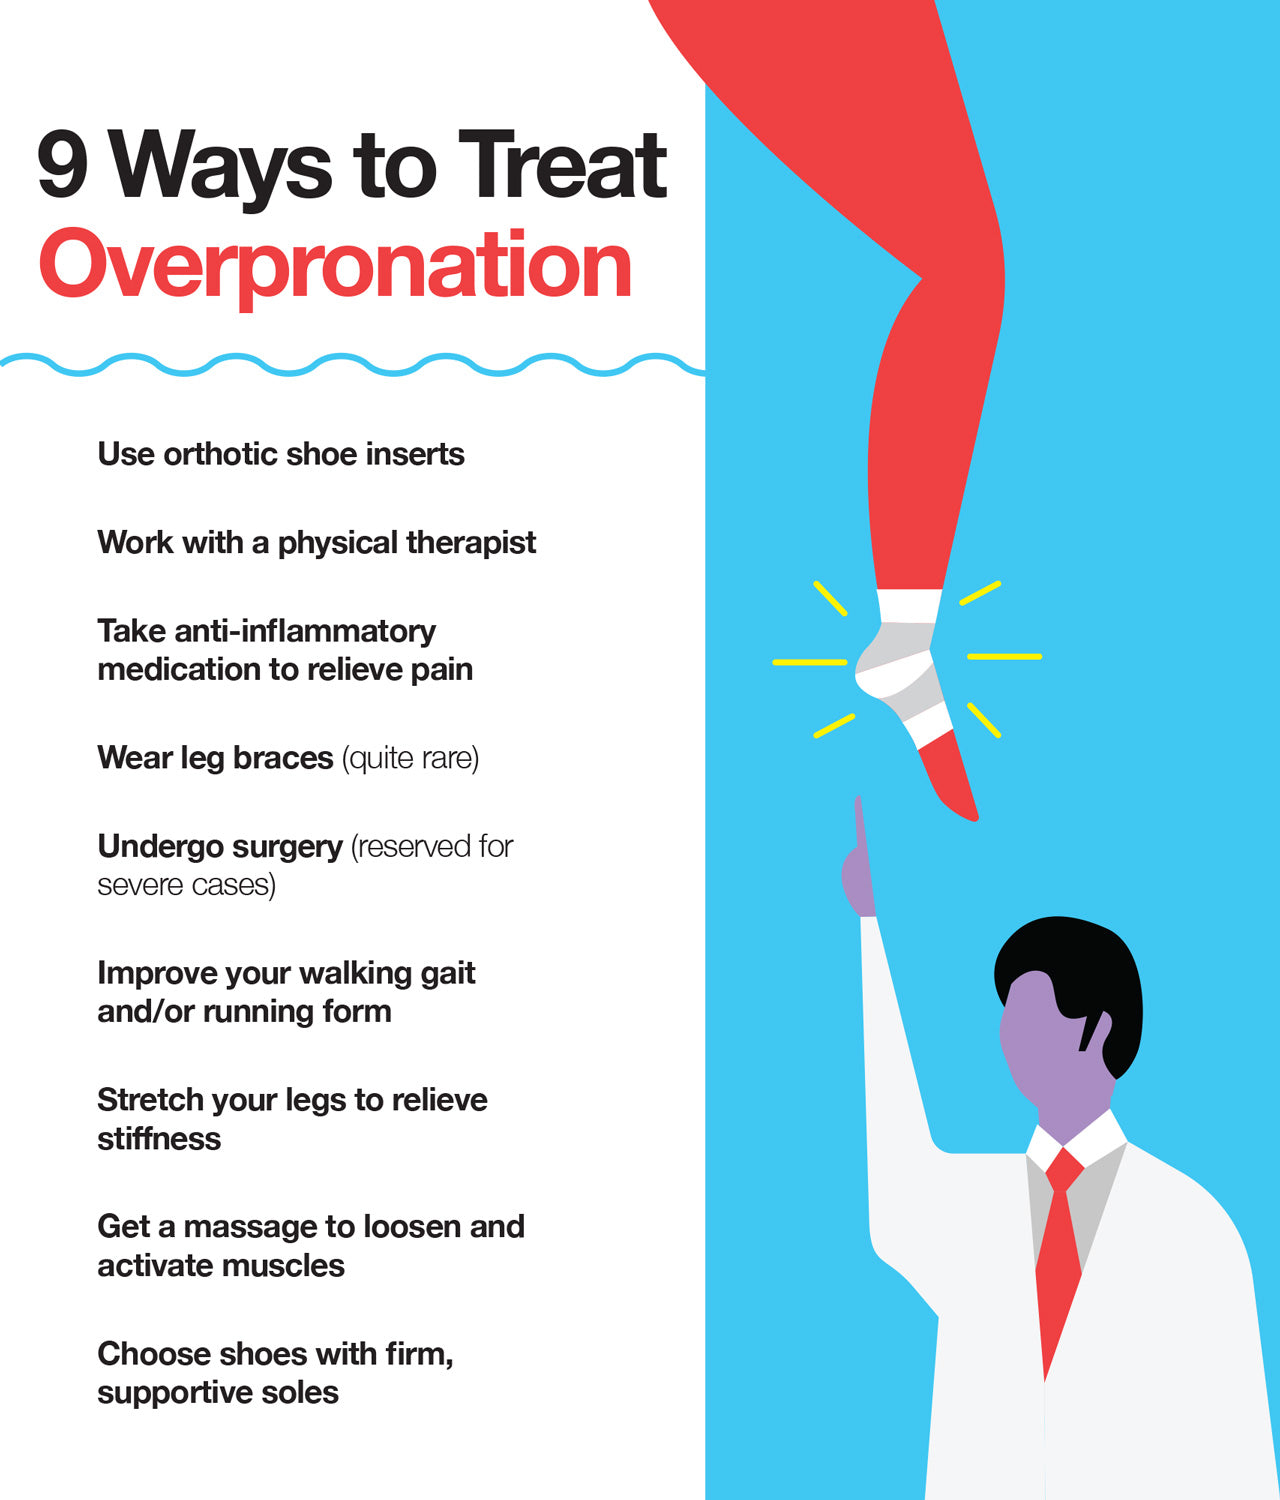 Here are 9 ways that you can treat overpronation.